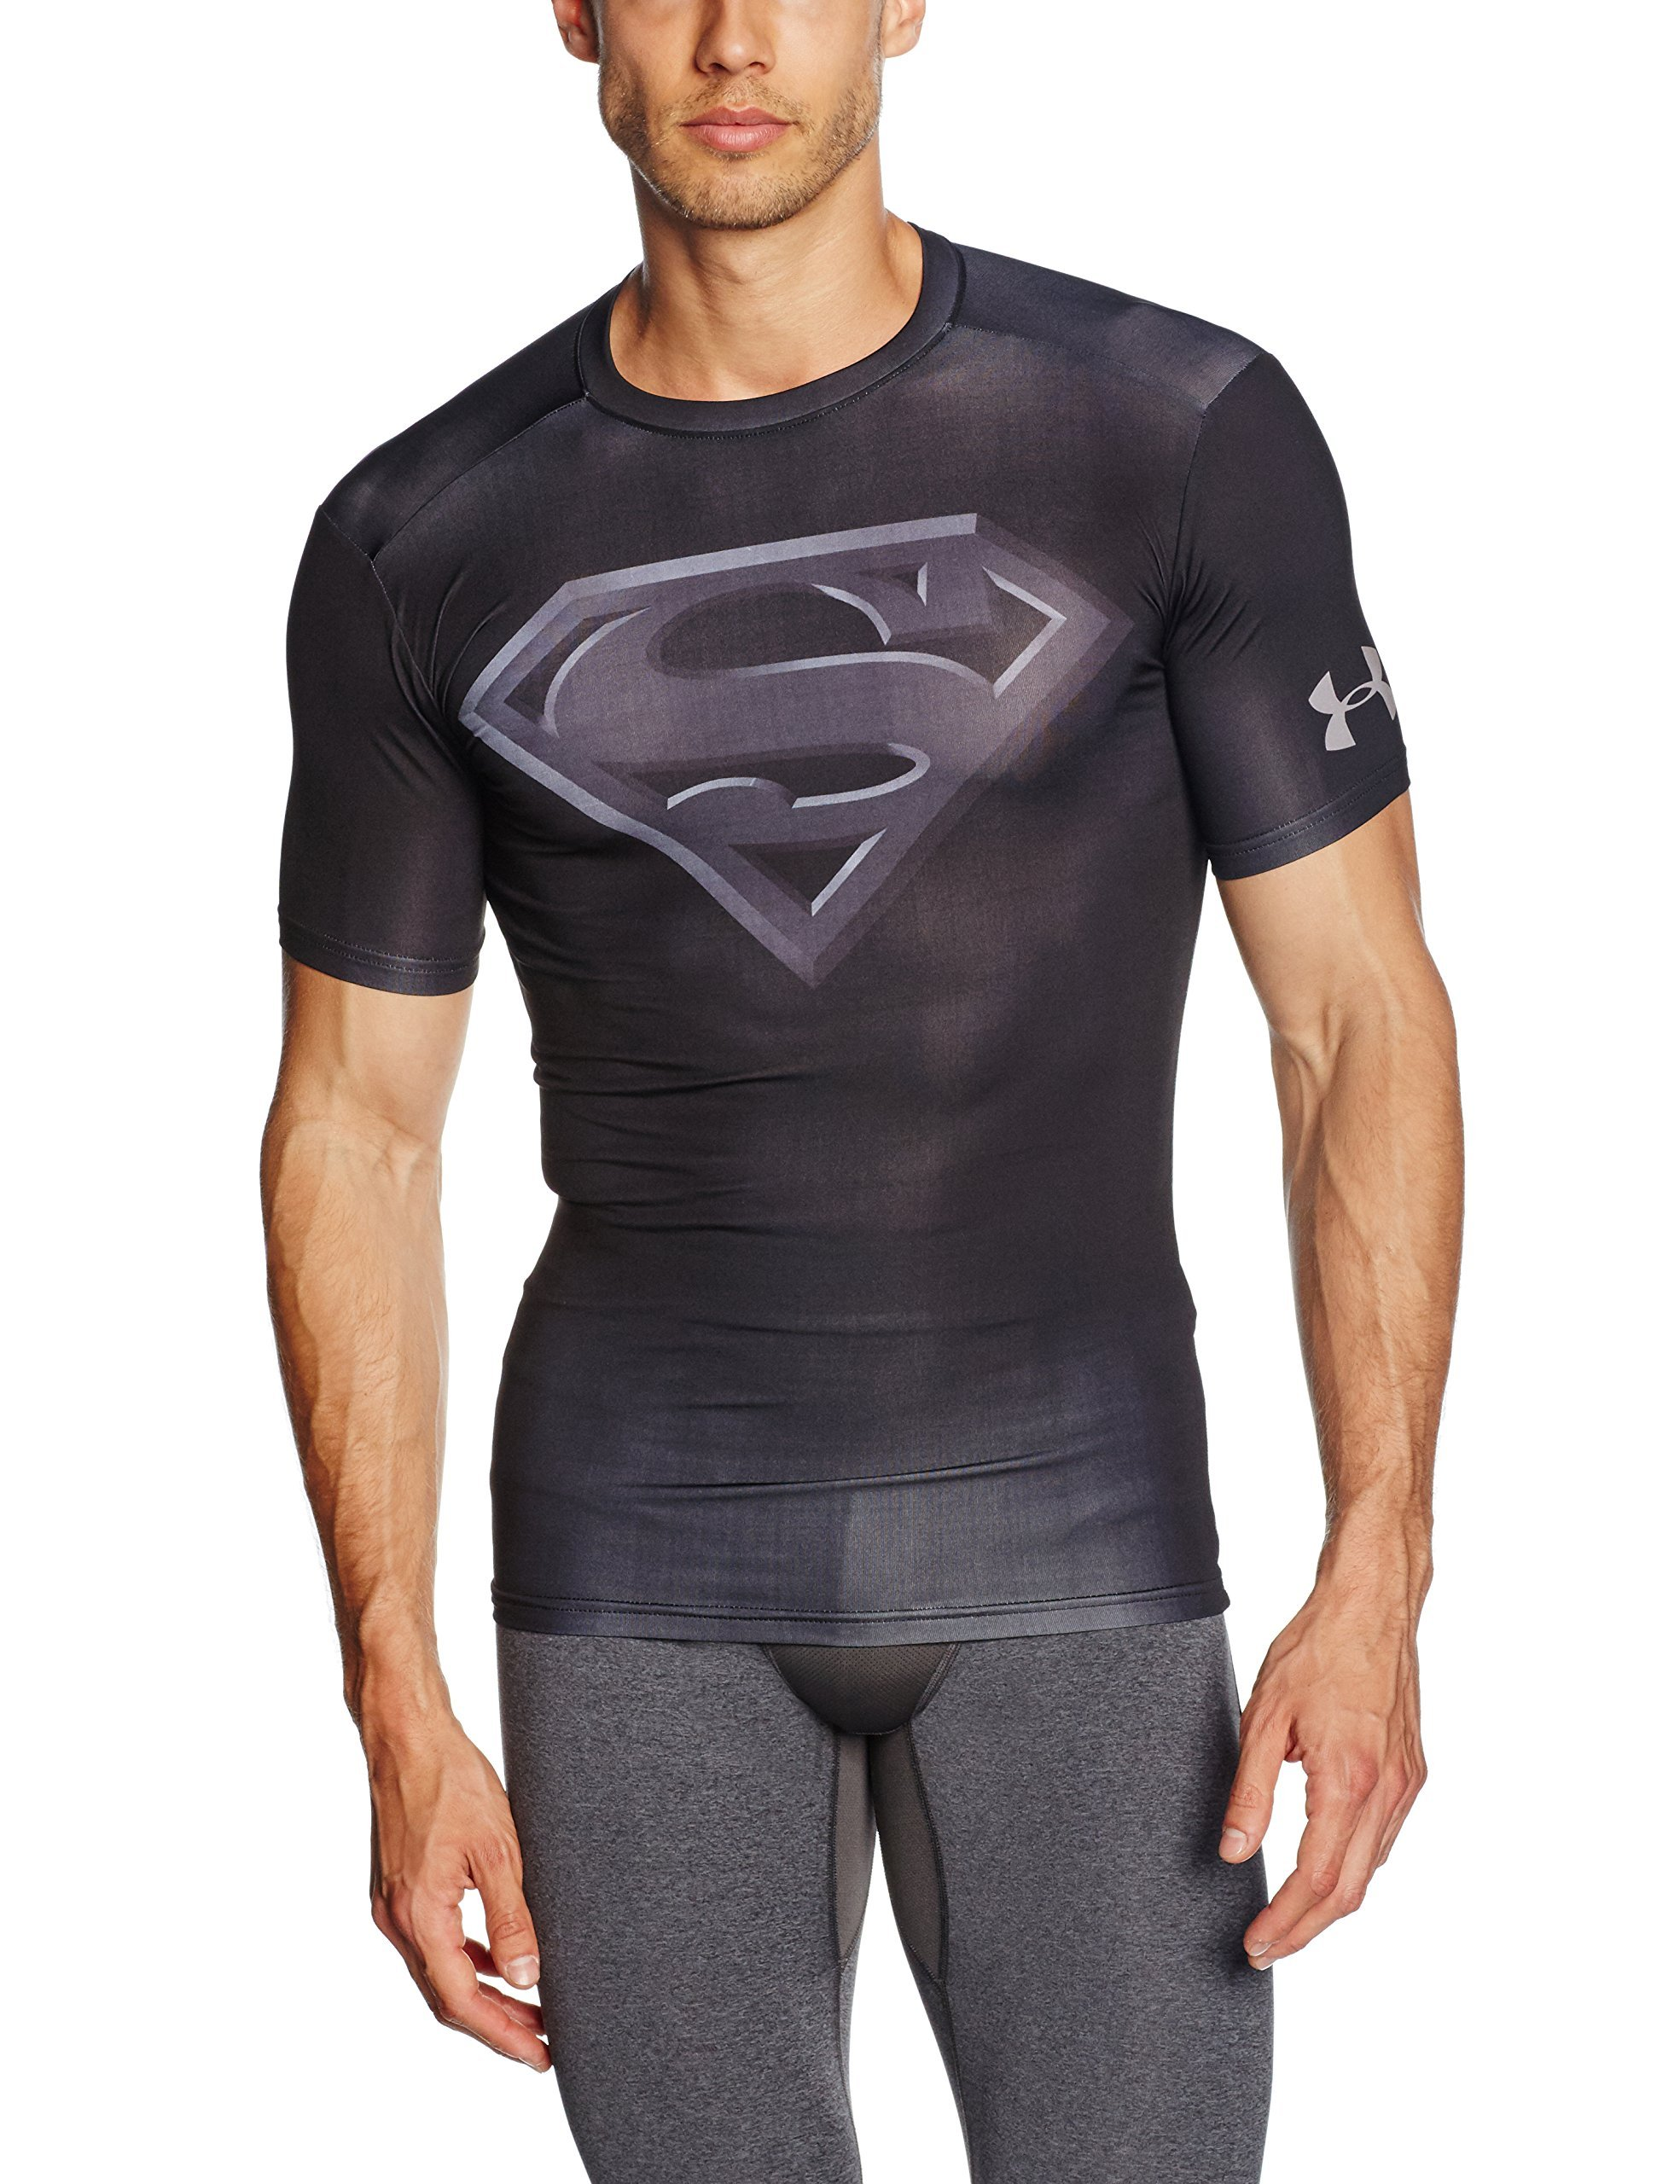 Under Armour Short Sleeve Alter Ego Compression T-Shirt - SS17 - Medium - Black